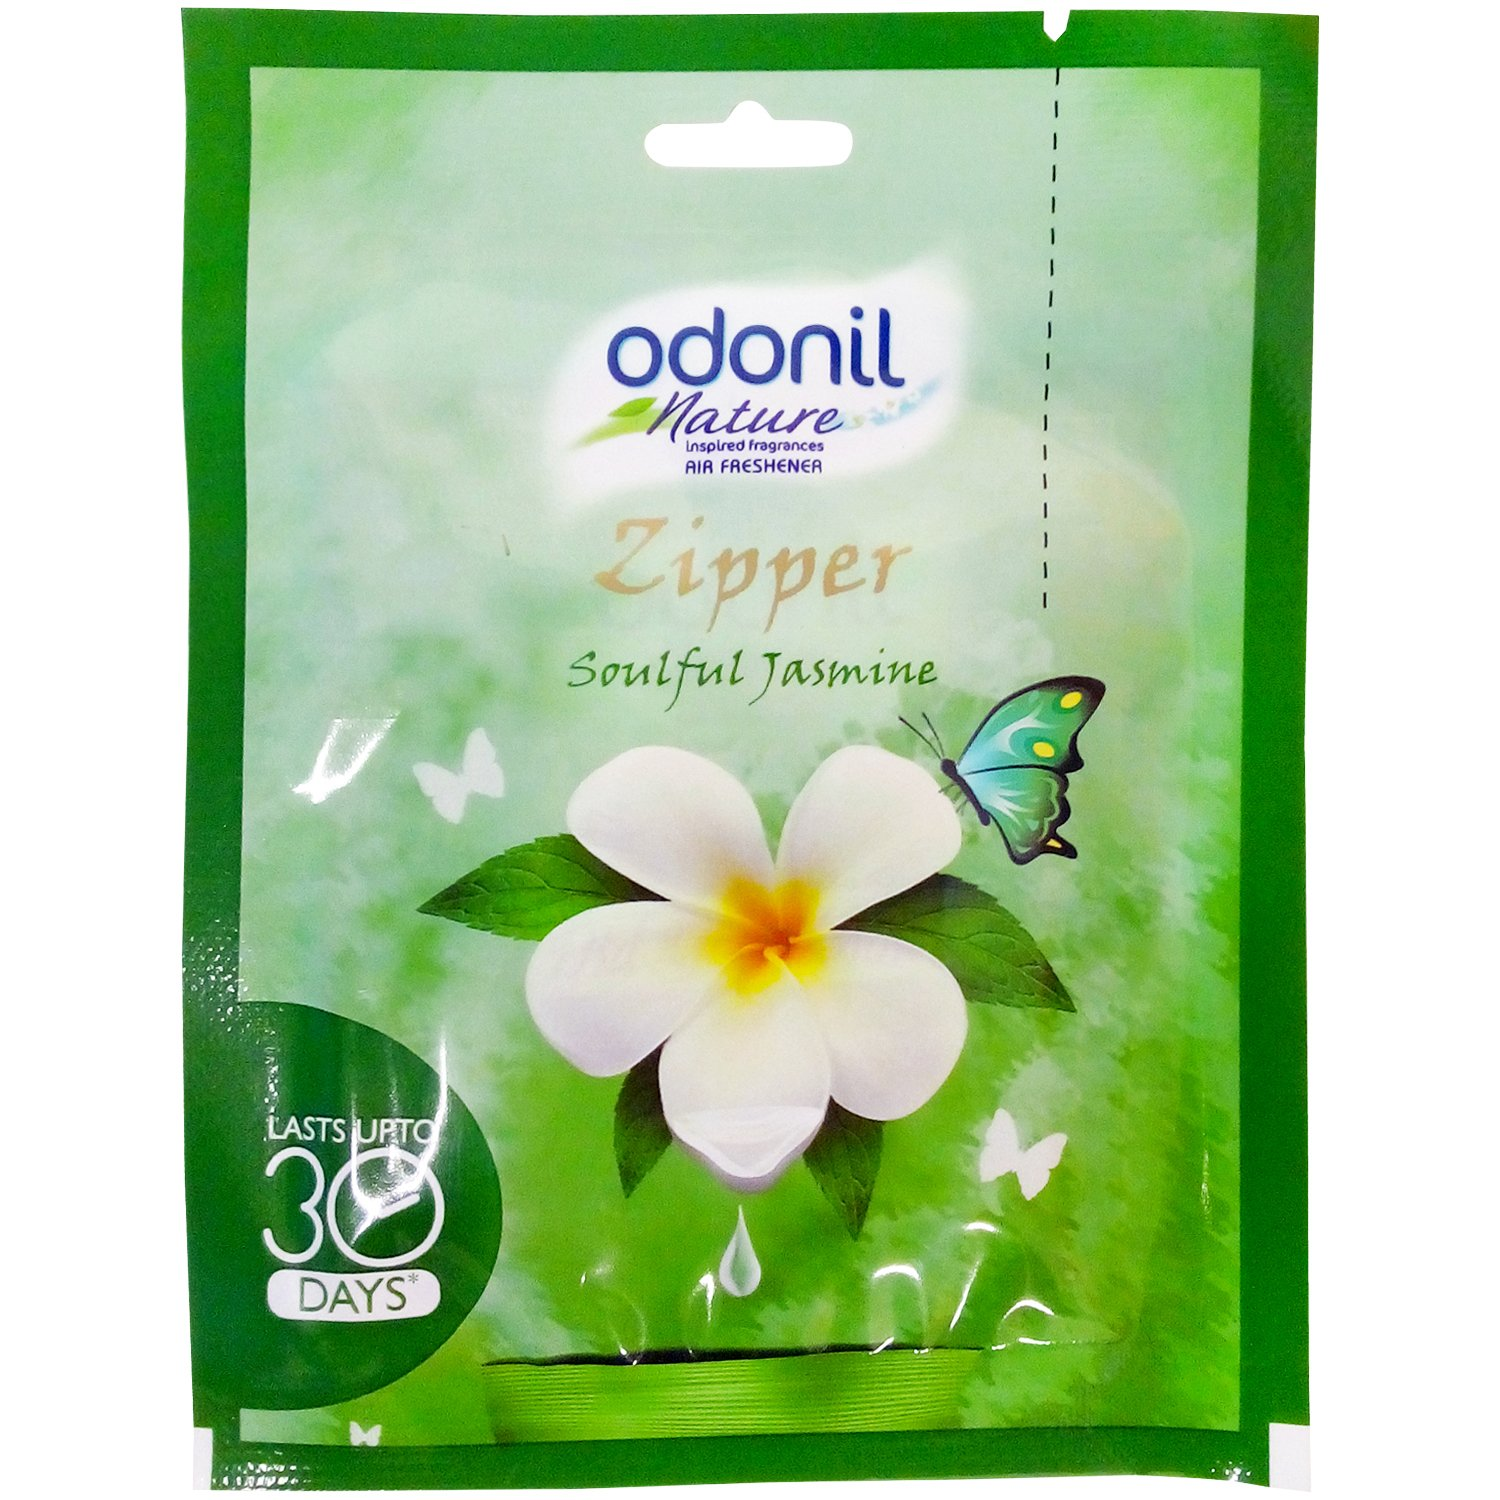 Odonil nature zipper air freshener soulful jasmine 10g pack odonil nature zipper air freshener soulful jasmine 10g pack amazon izmirmasajfo